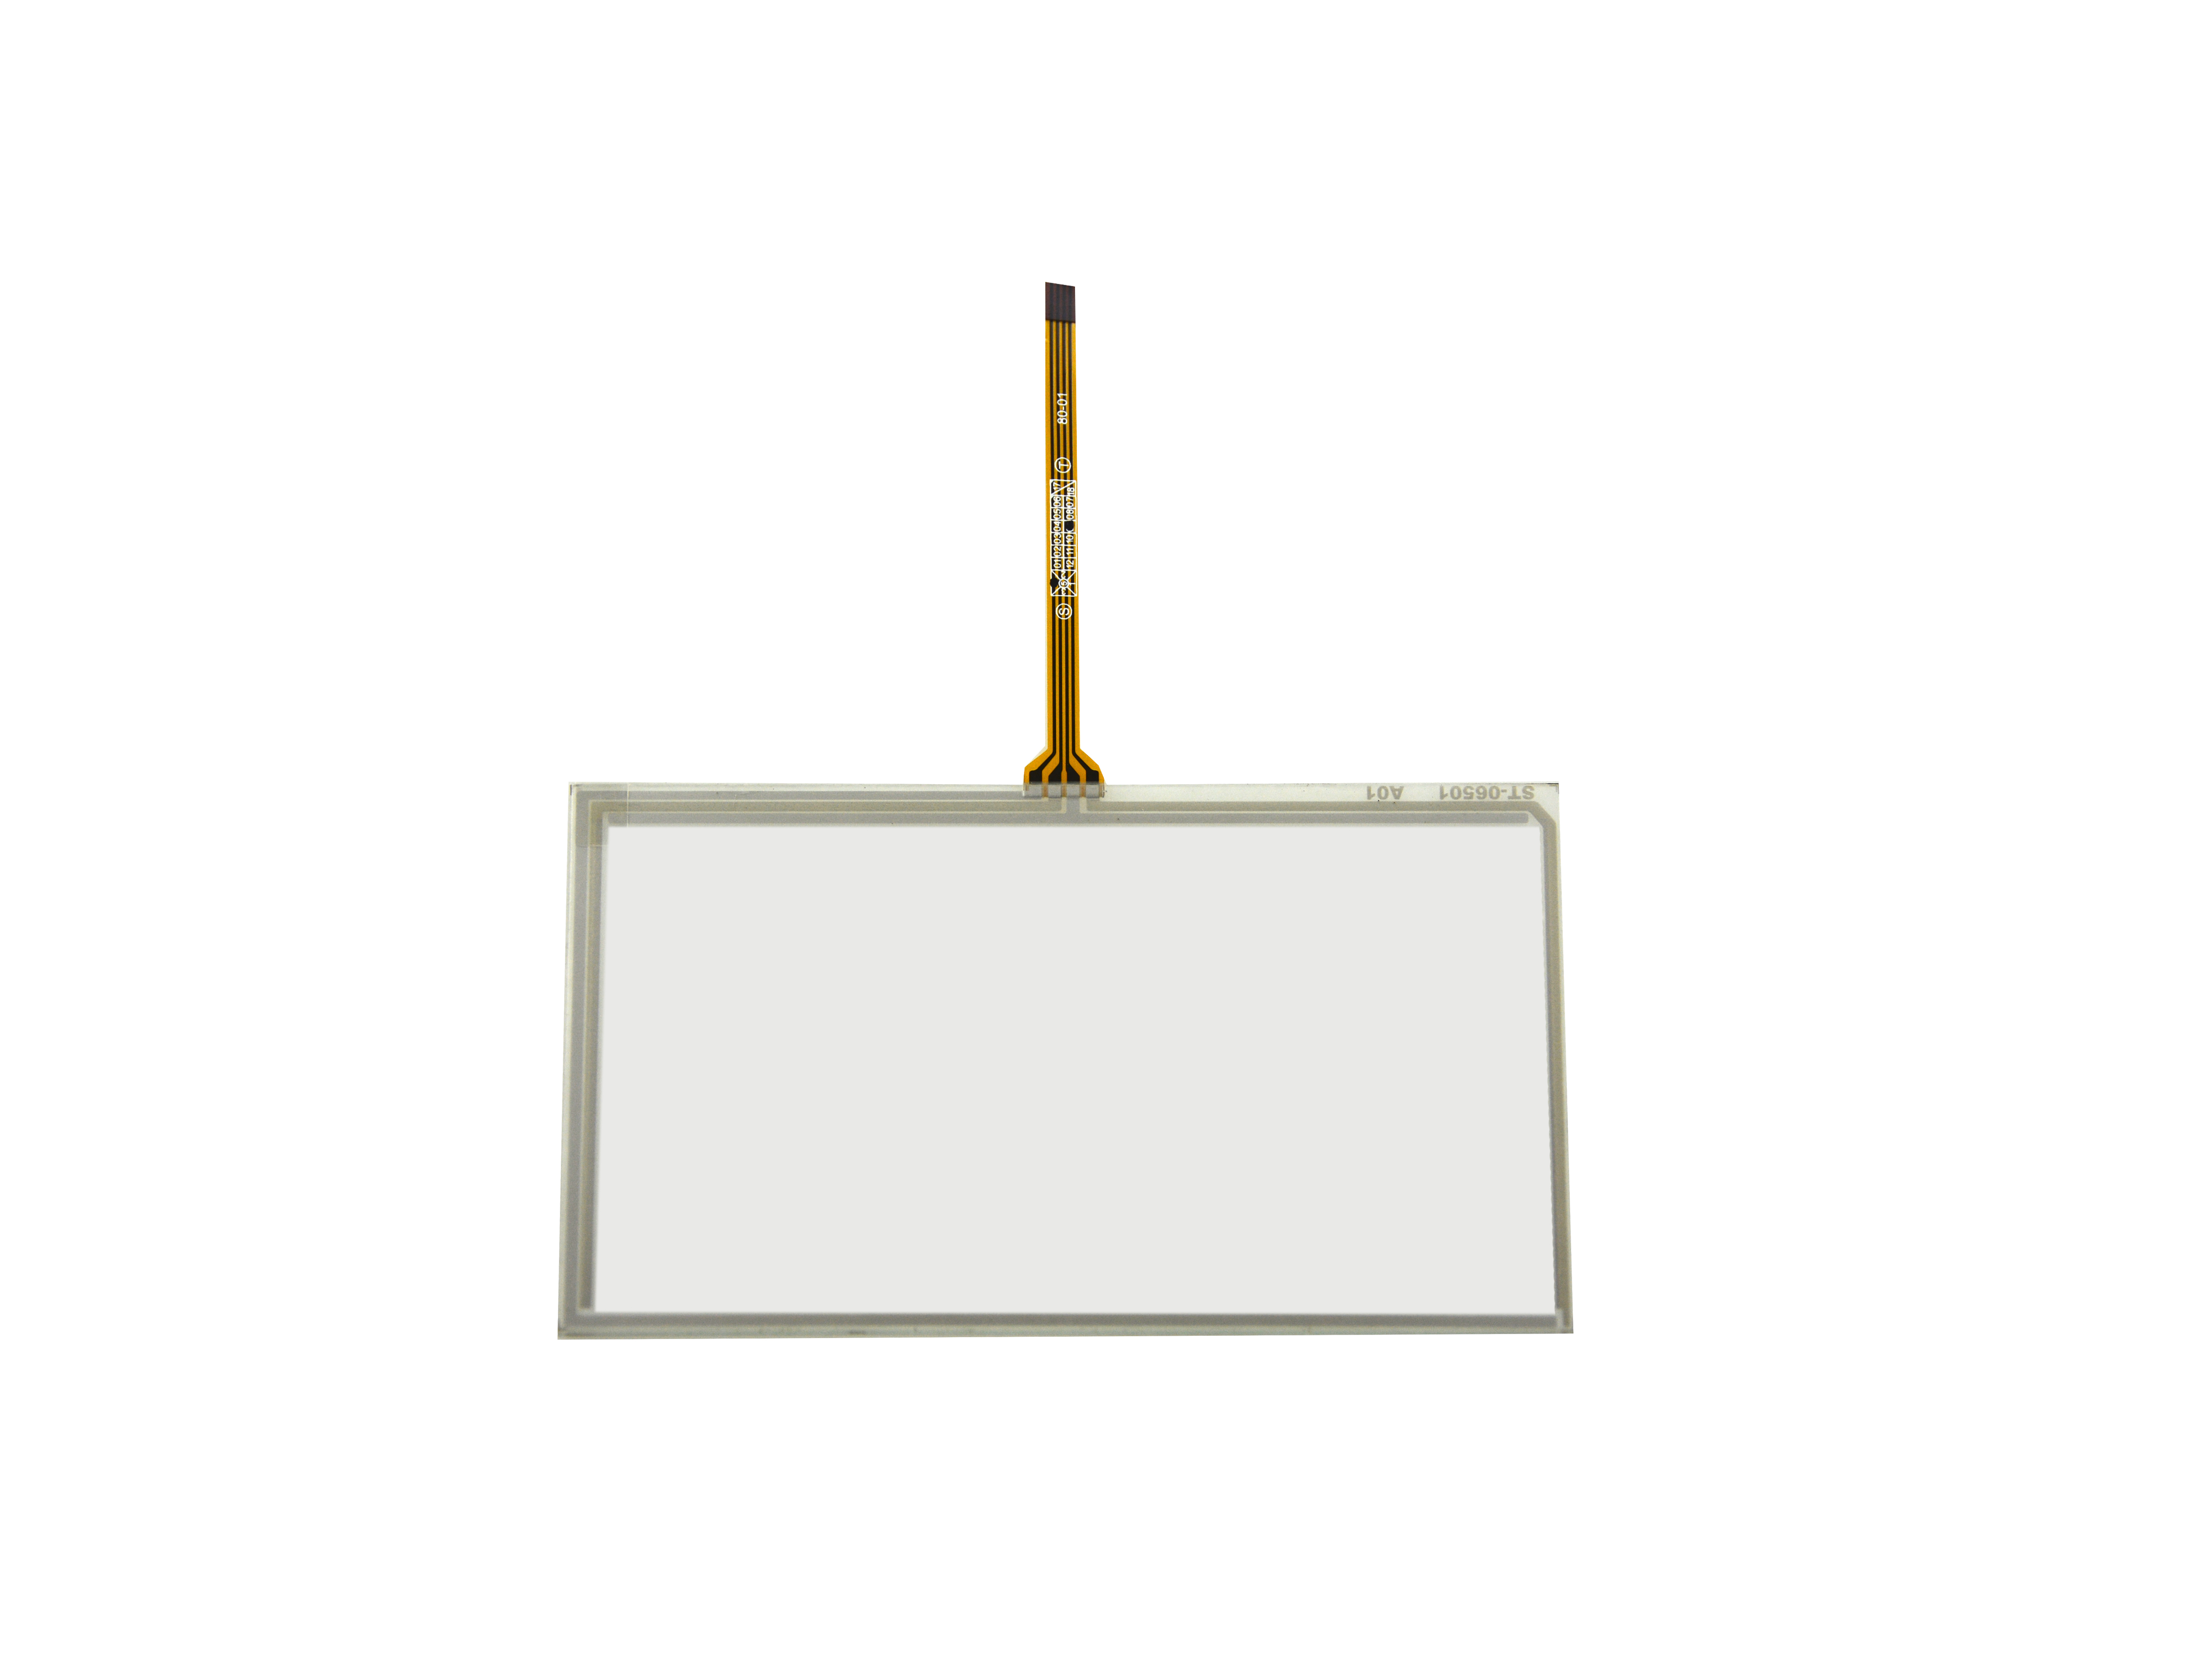 6.2inch 4 Wire Resistive Touch Panel 154mm x 88mm For 6.2  LCD Screen GPS